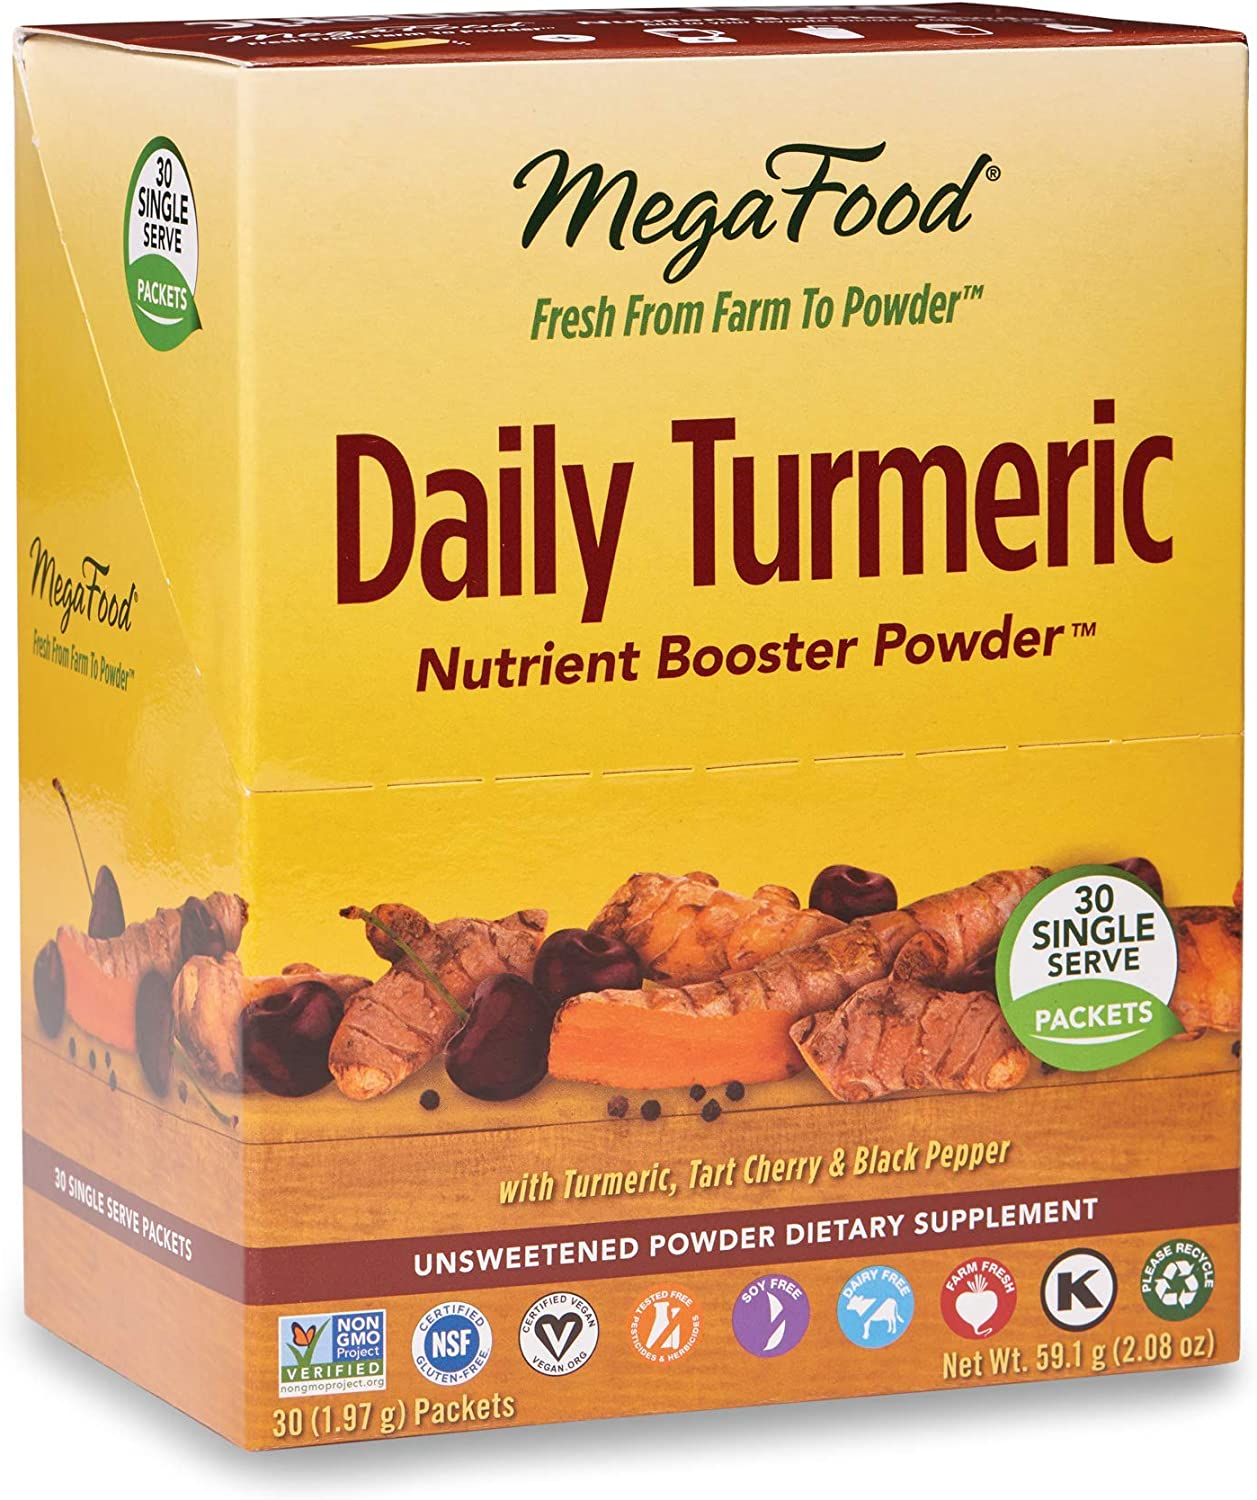 MegaFood - Daily Turmeric Booster Powder, Promotes Healthy Stress and Inflammatory Response with Tart Cherry and Holy Basil Leaf, Vegan, Gluten-Free, Non-GMO, 30 Singles